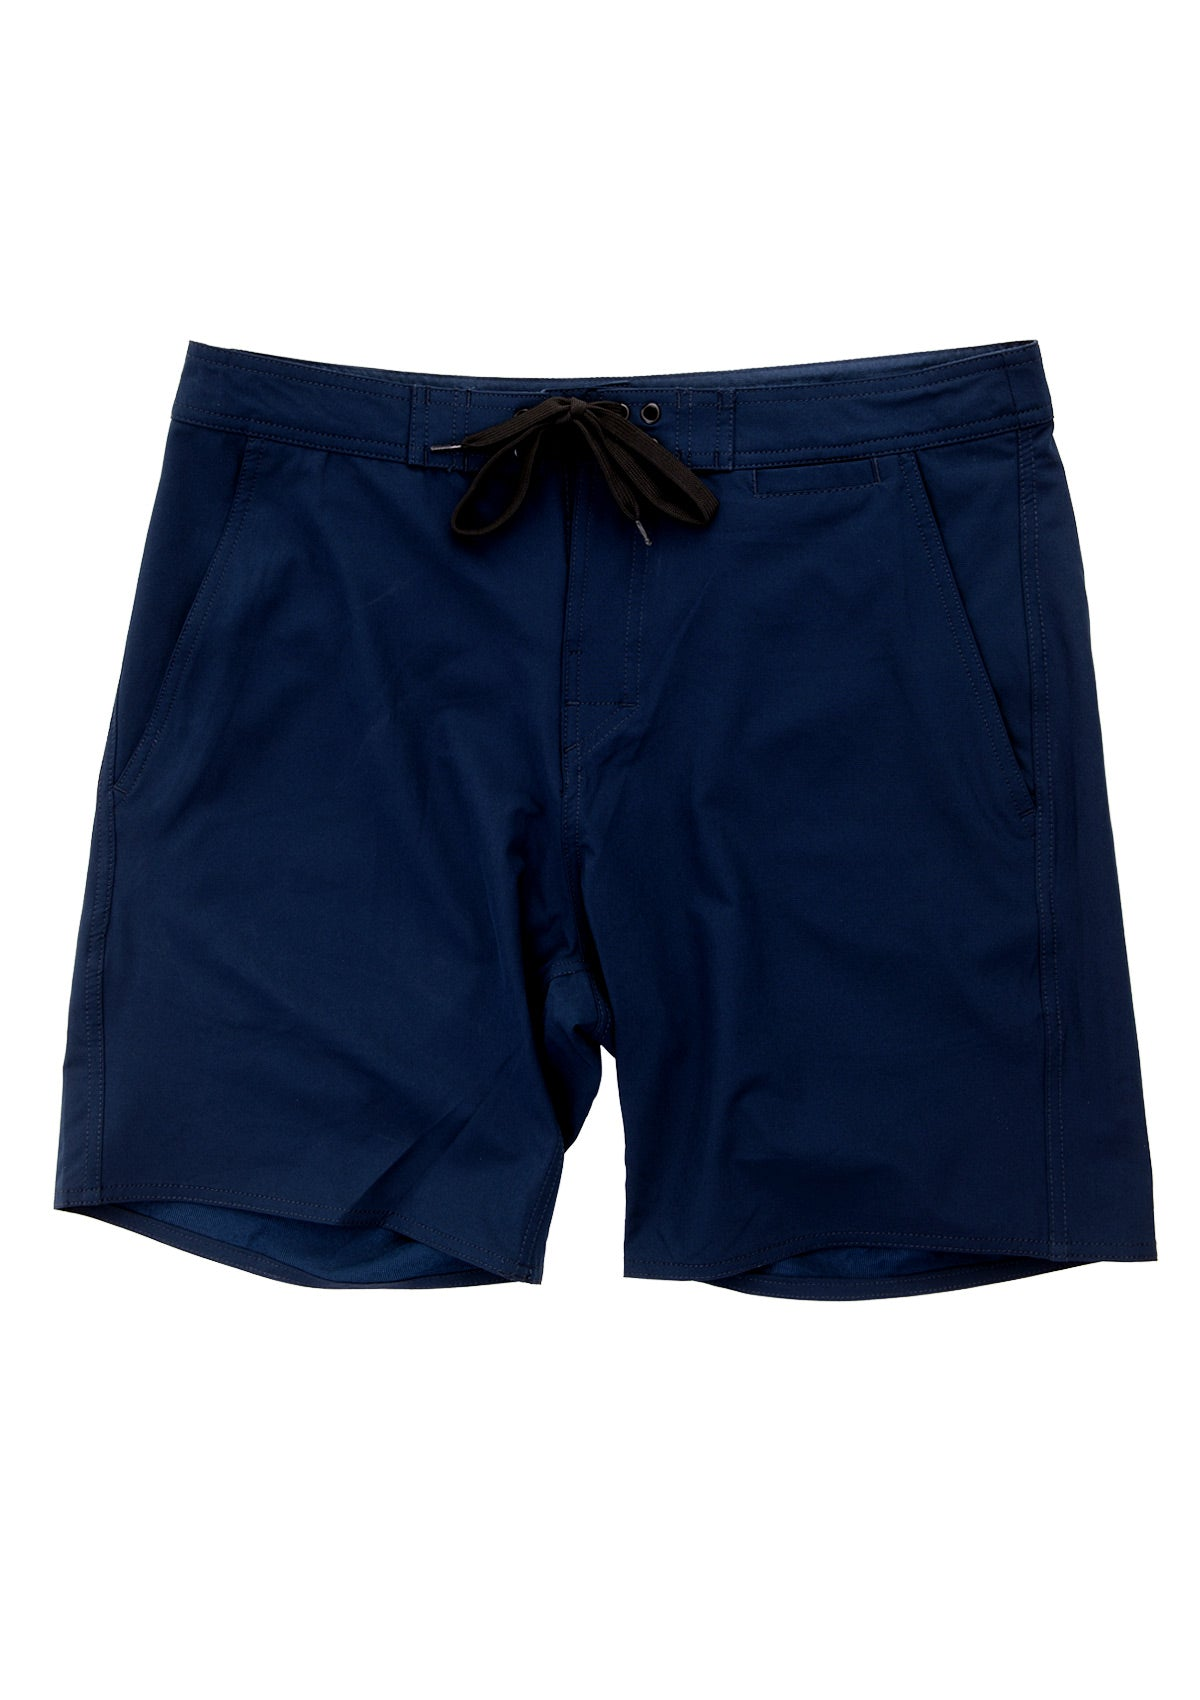 Navy-All-Rounder Boardshort